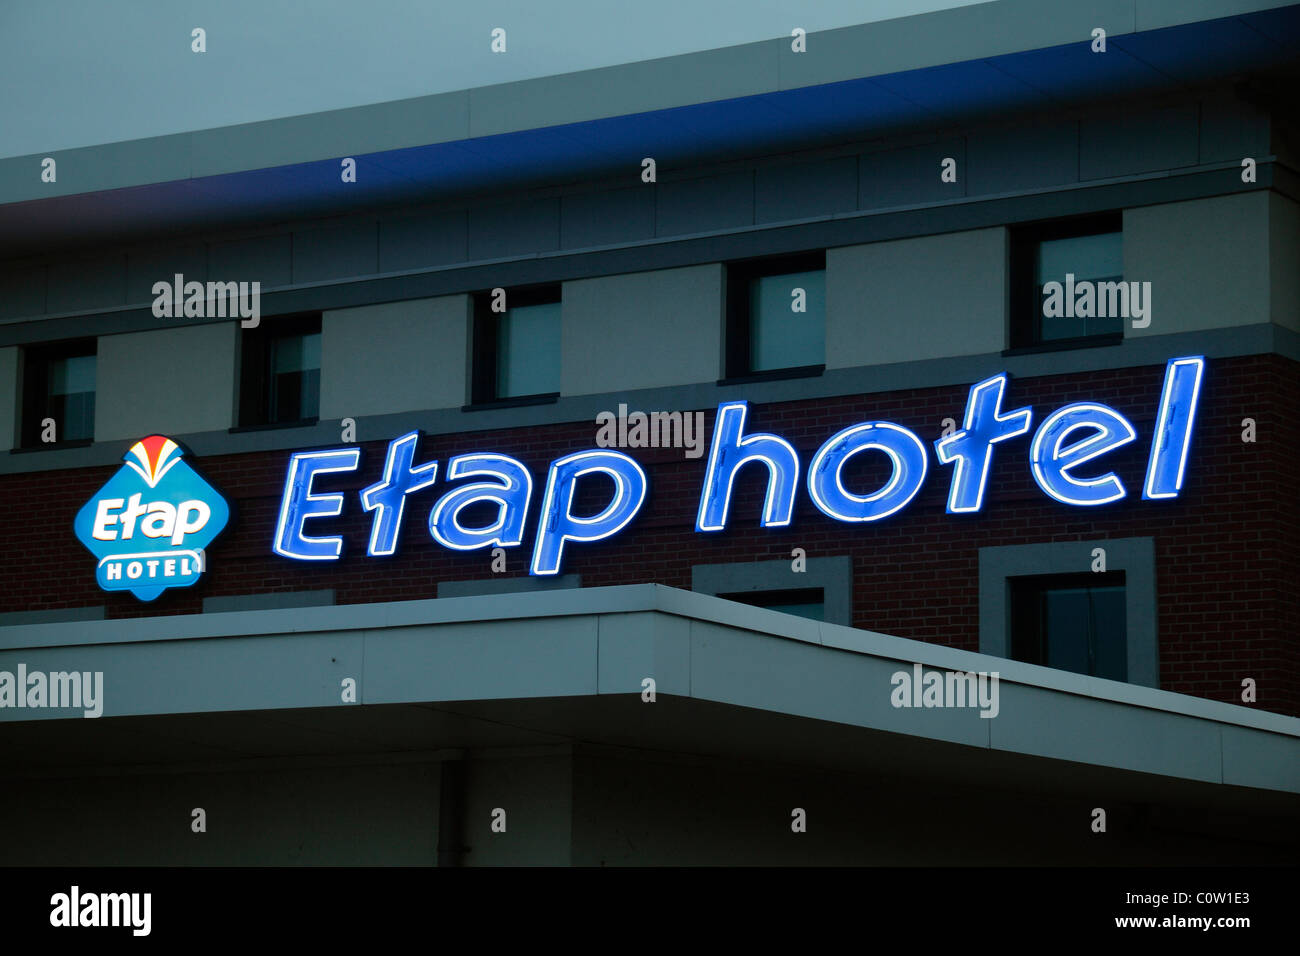 An evening view of the illuminated Etap budget hotel logo